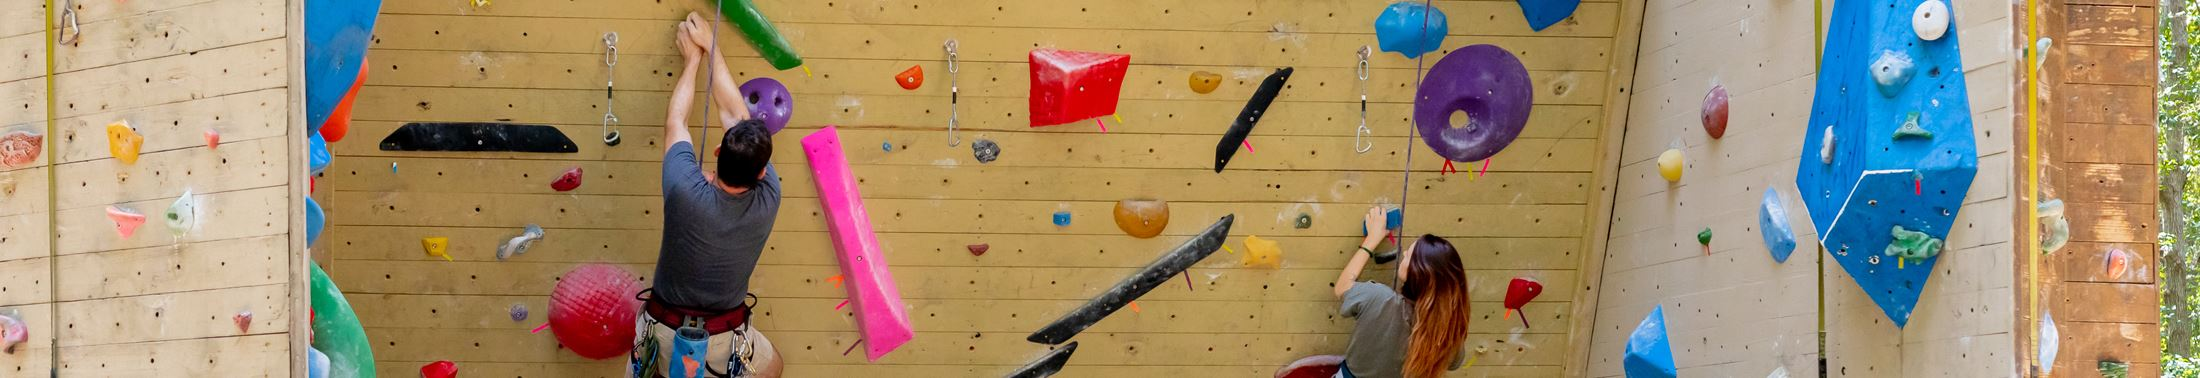 Two climbers at the Climbing Wall at James Island County Park